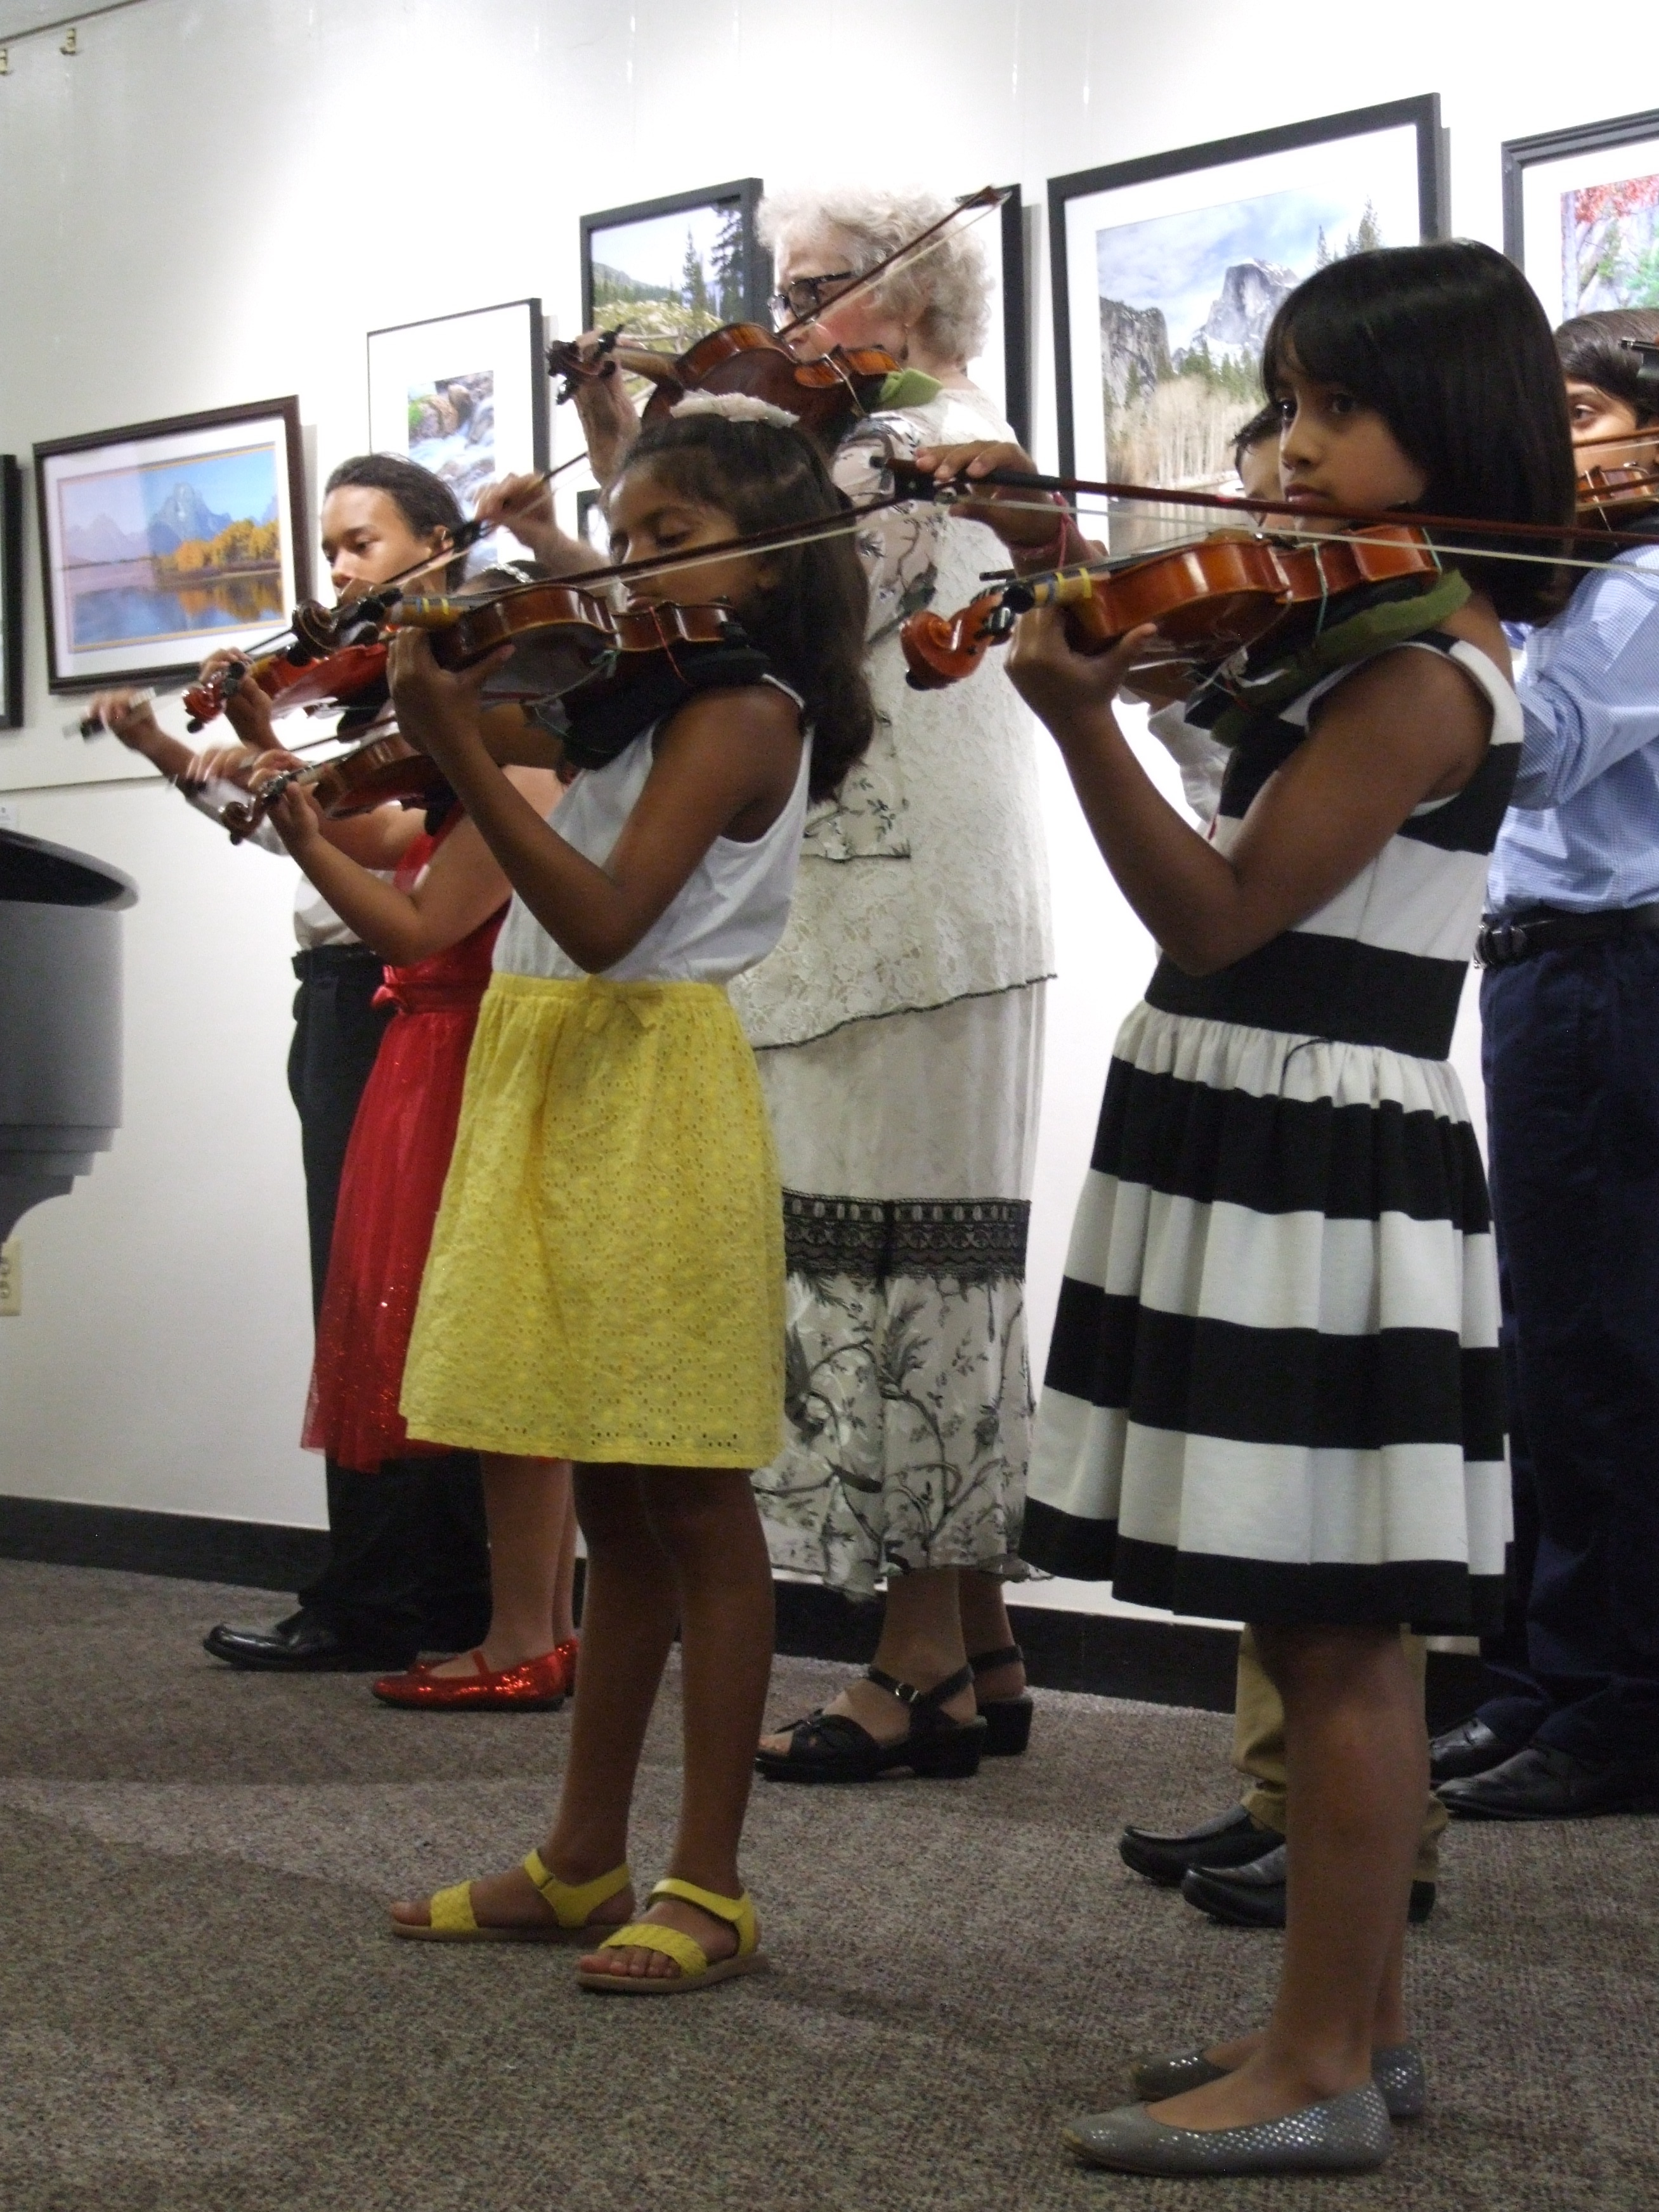 Students playing their violins